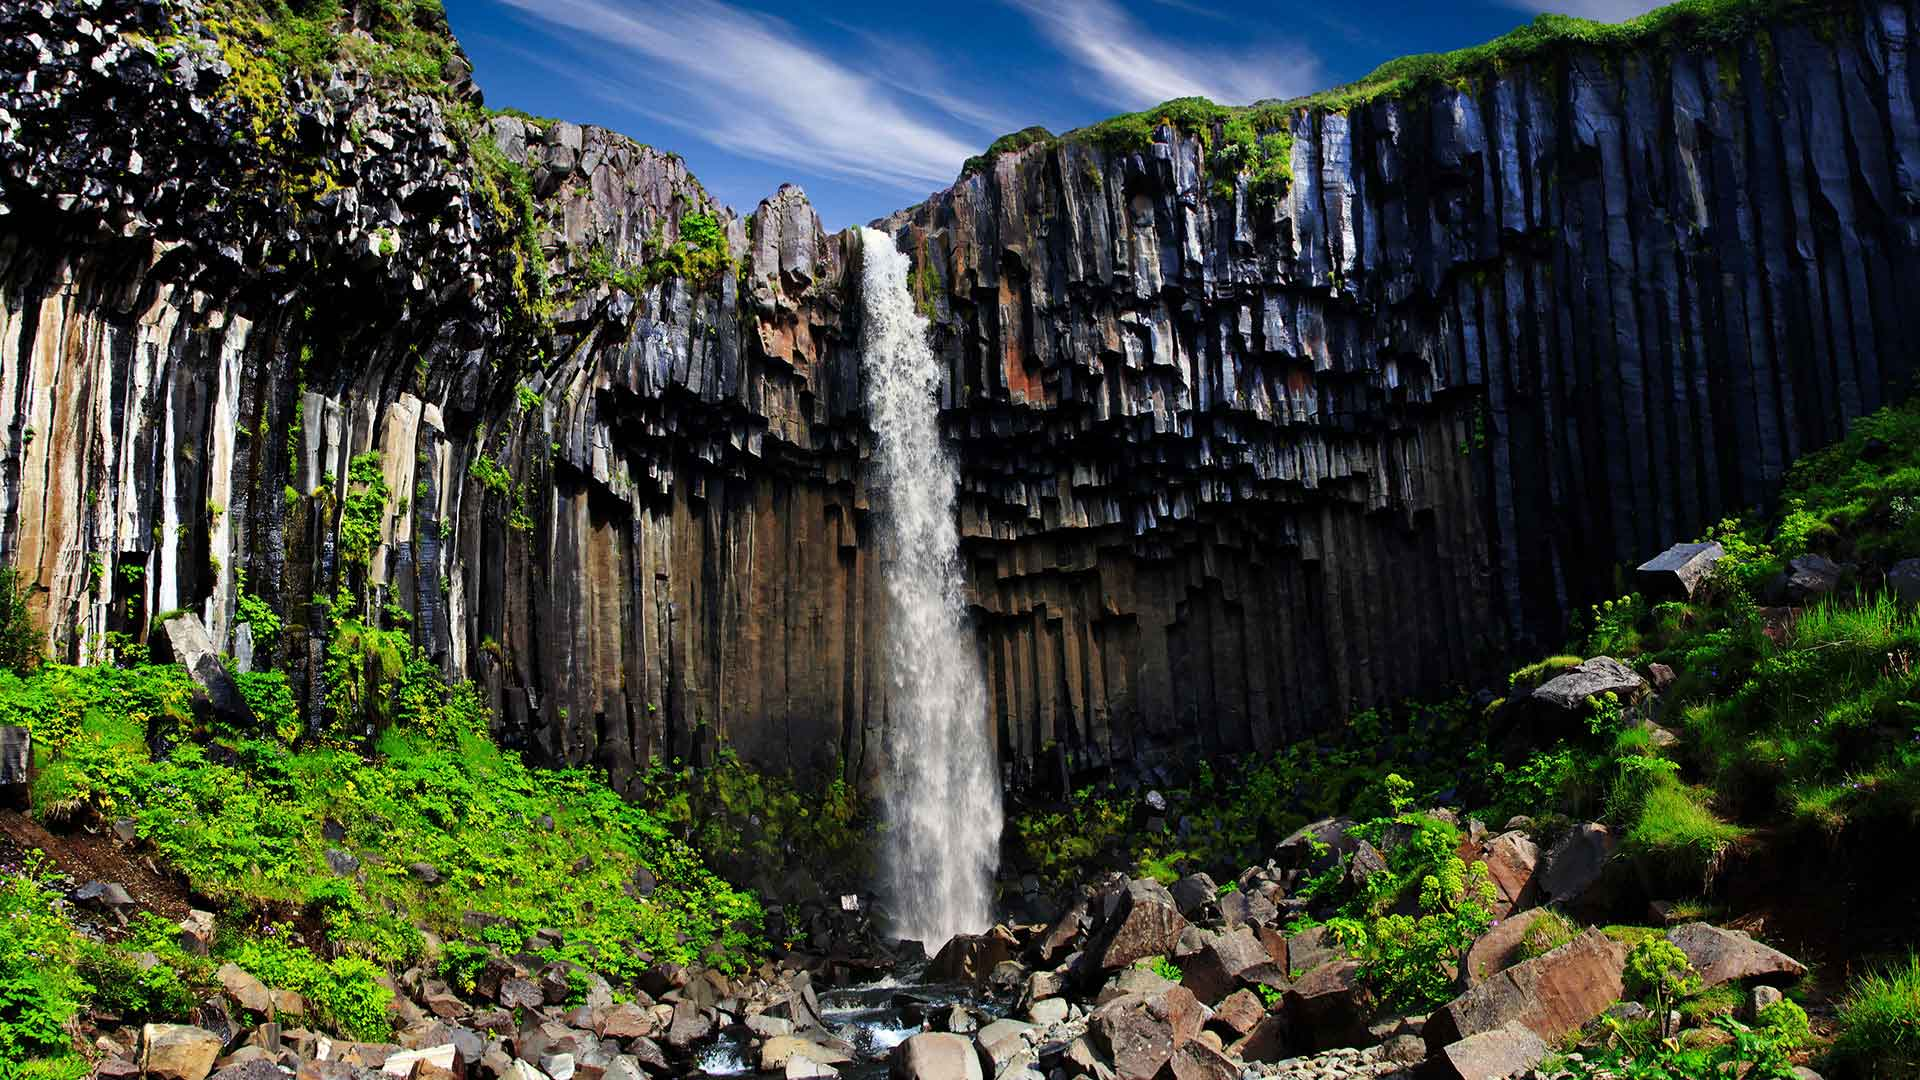 The Natural Wonders of Iceland - 9 Days 8 Nights - Nordic Visitor